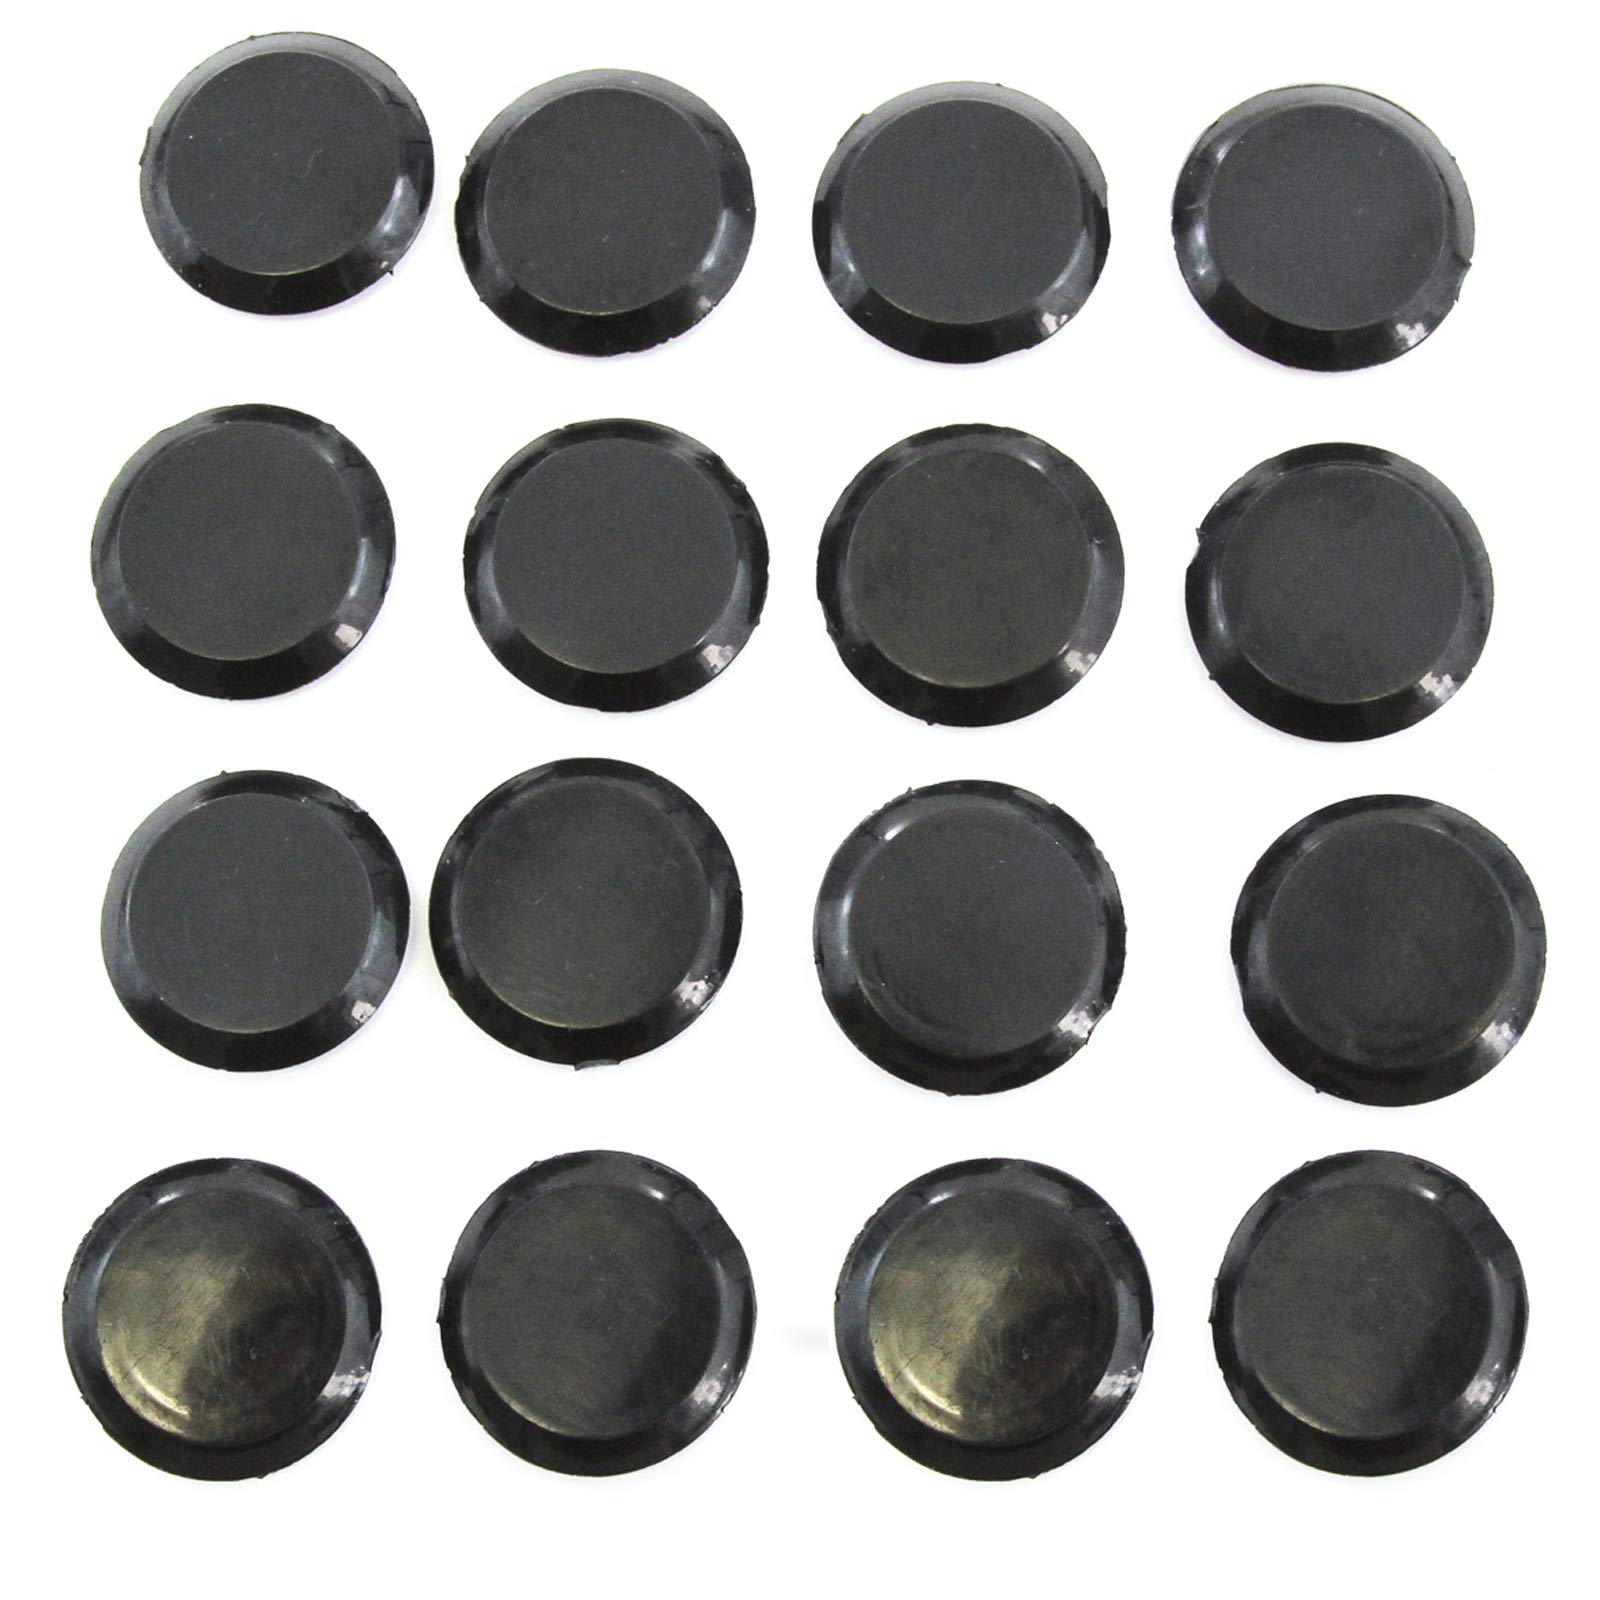 Red Hound Auto 16 Floor Drain Plugs 1999-2006 Compatible with Jeep Wrangler TJ Rubber Hole Cover Round Shaped